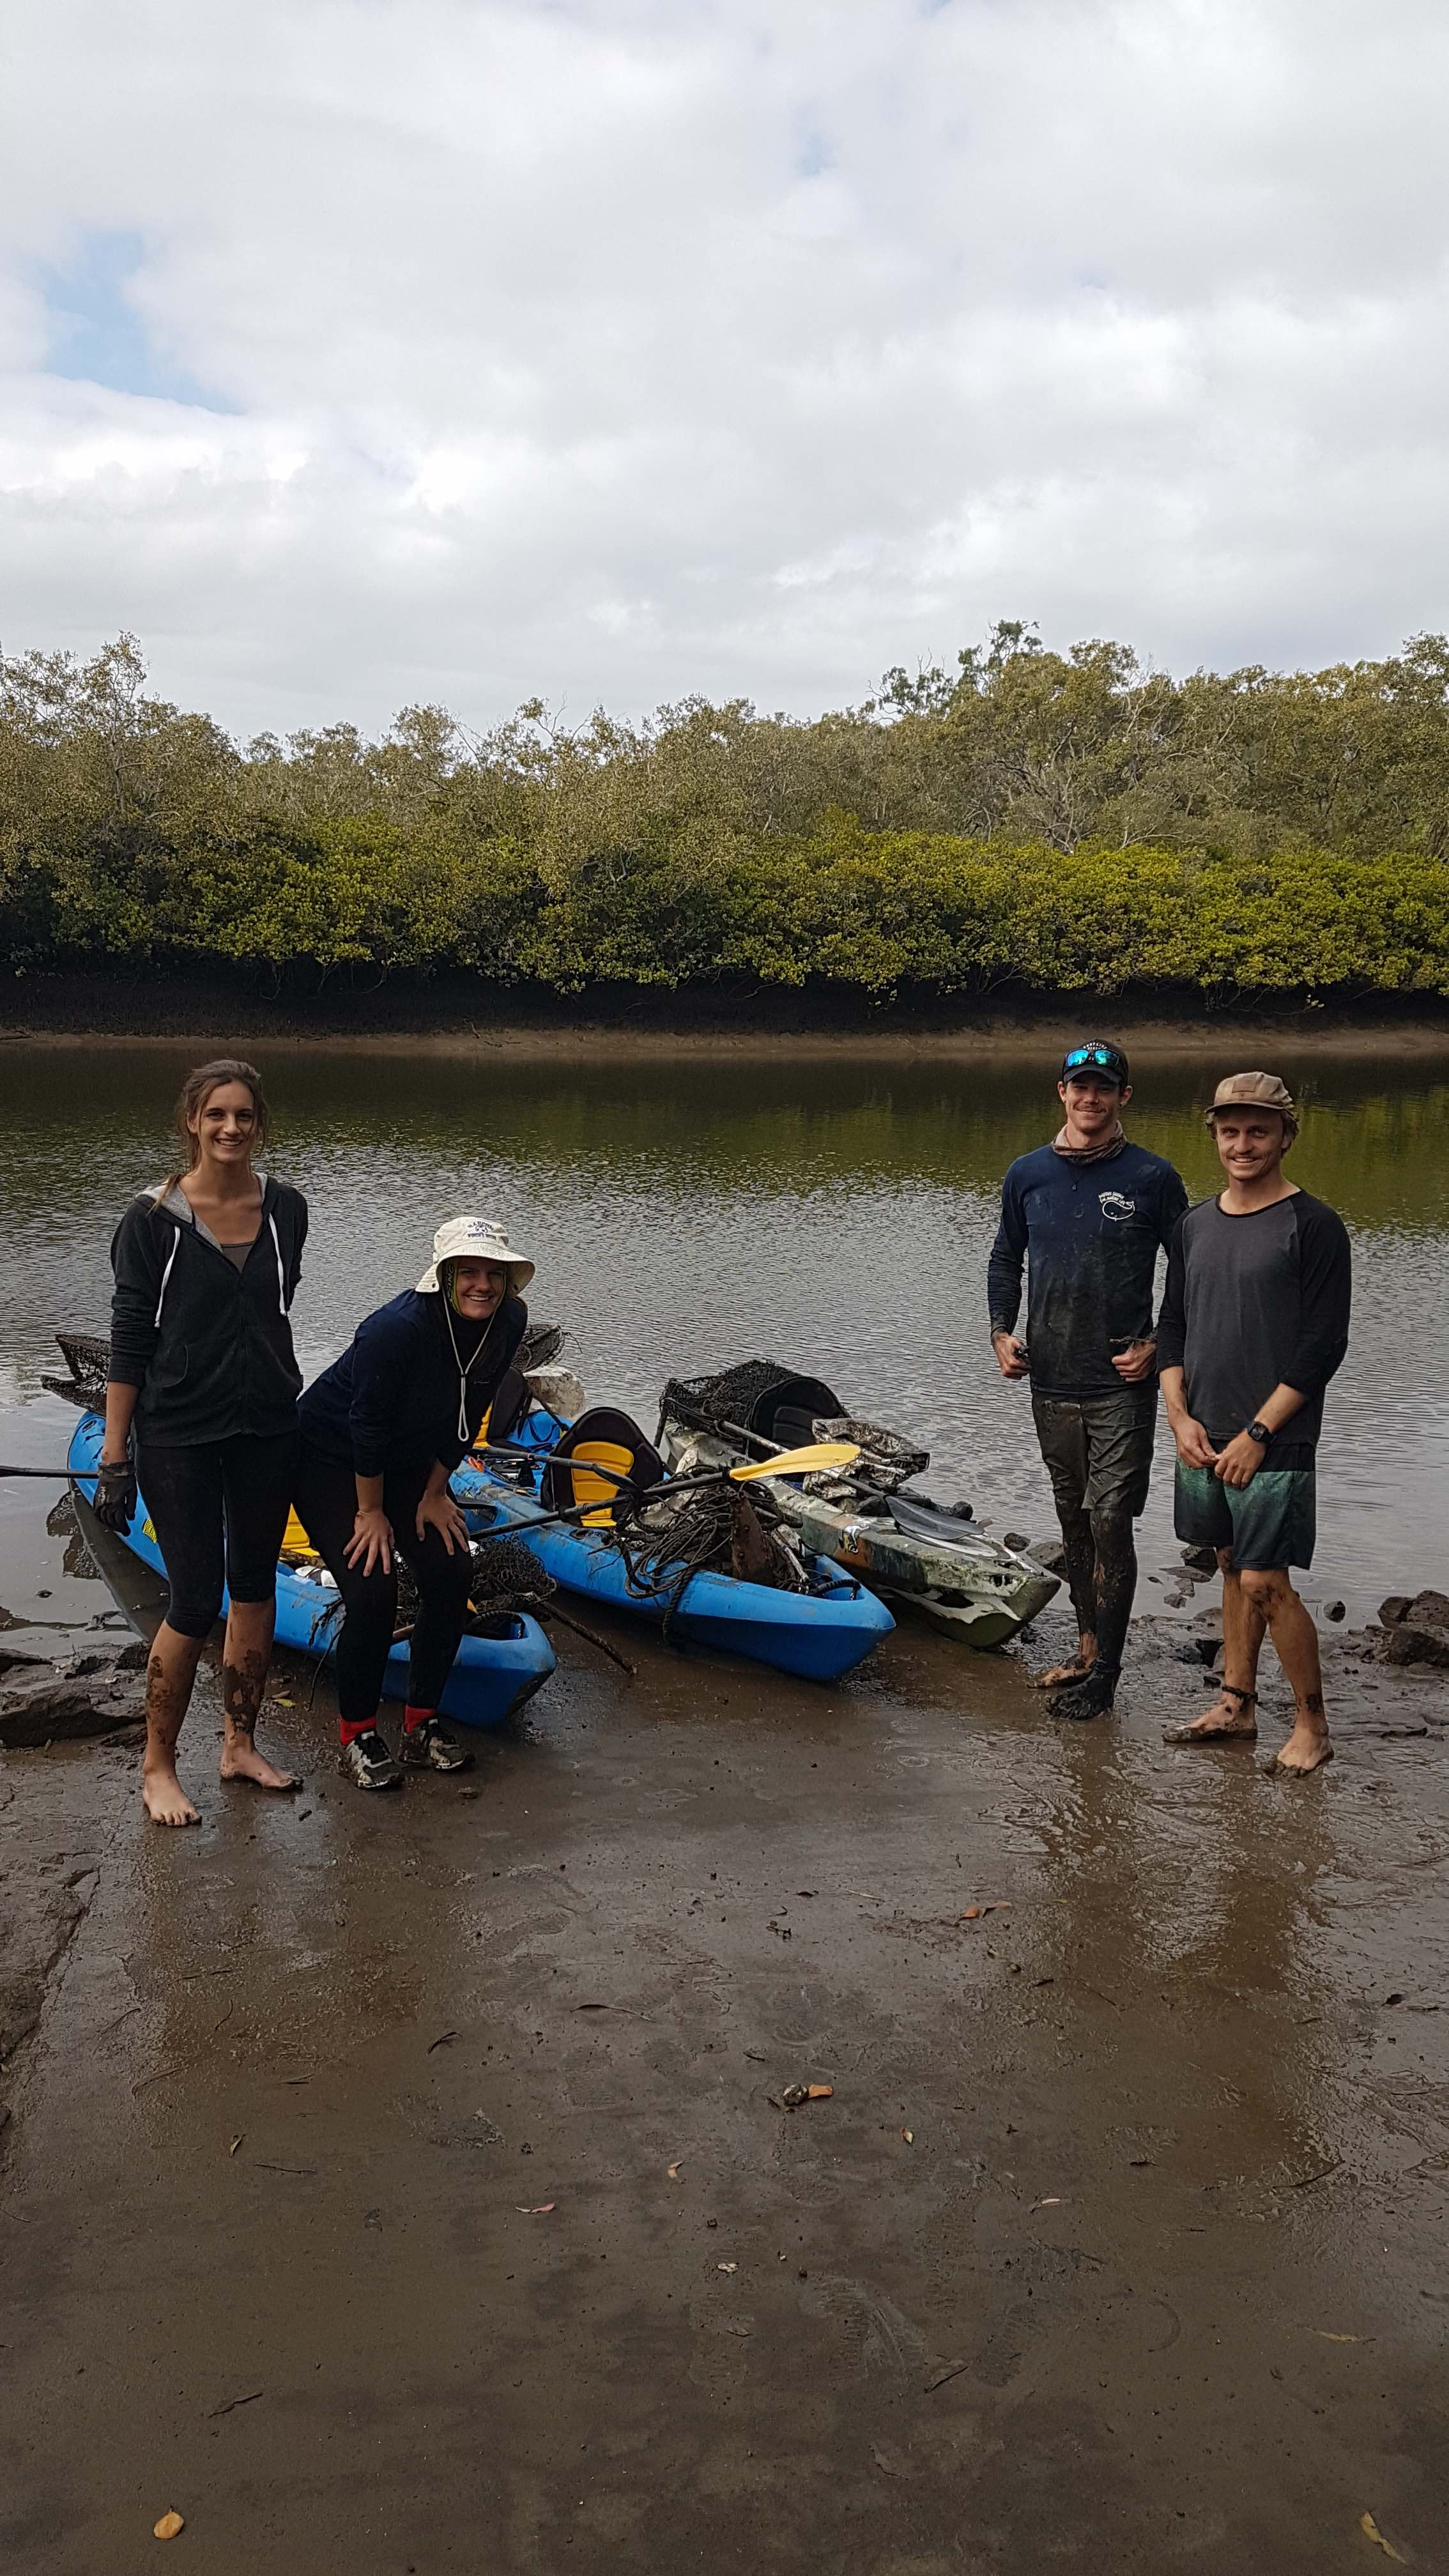 Our local team after another successful survey on Tingalpa Creek. So far the team have collected over 6,800 pieces of debris in just 7 surveys!